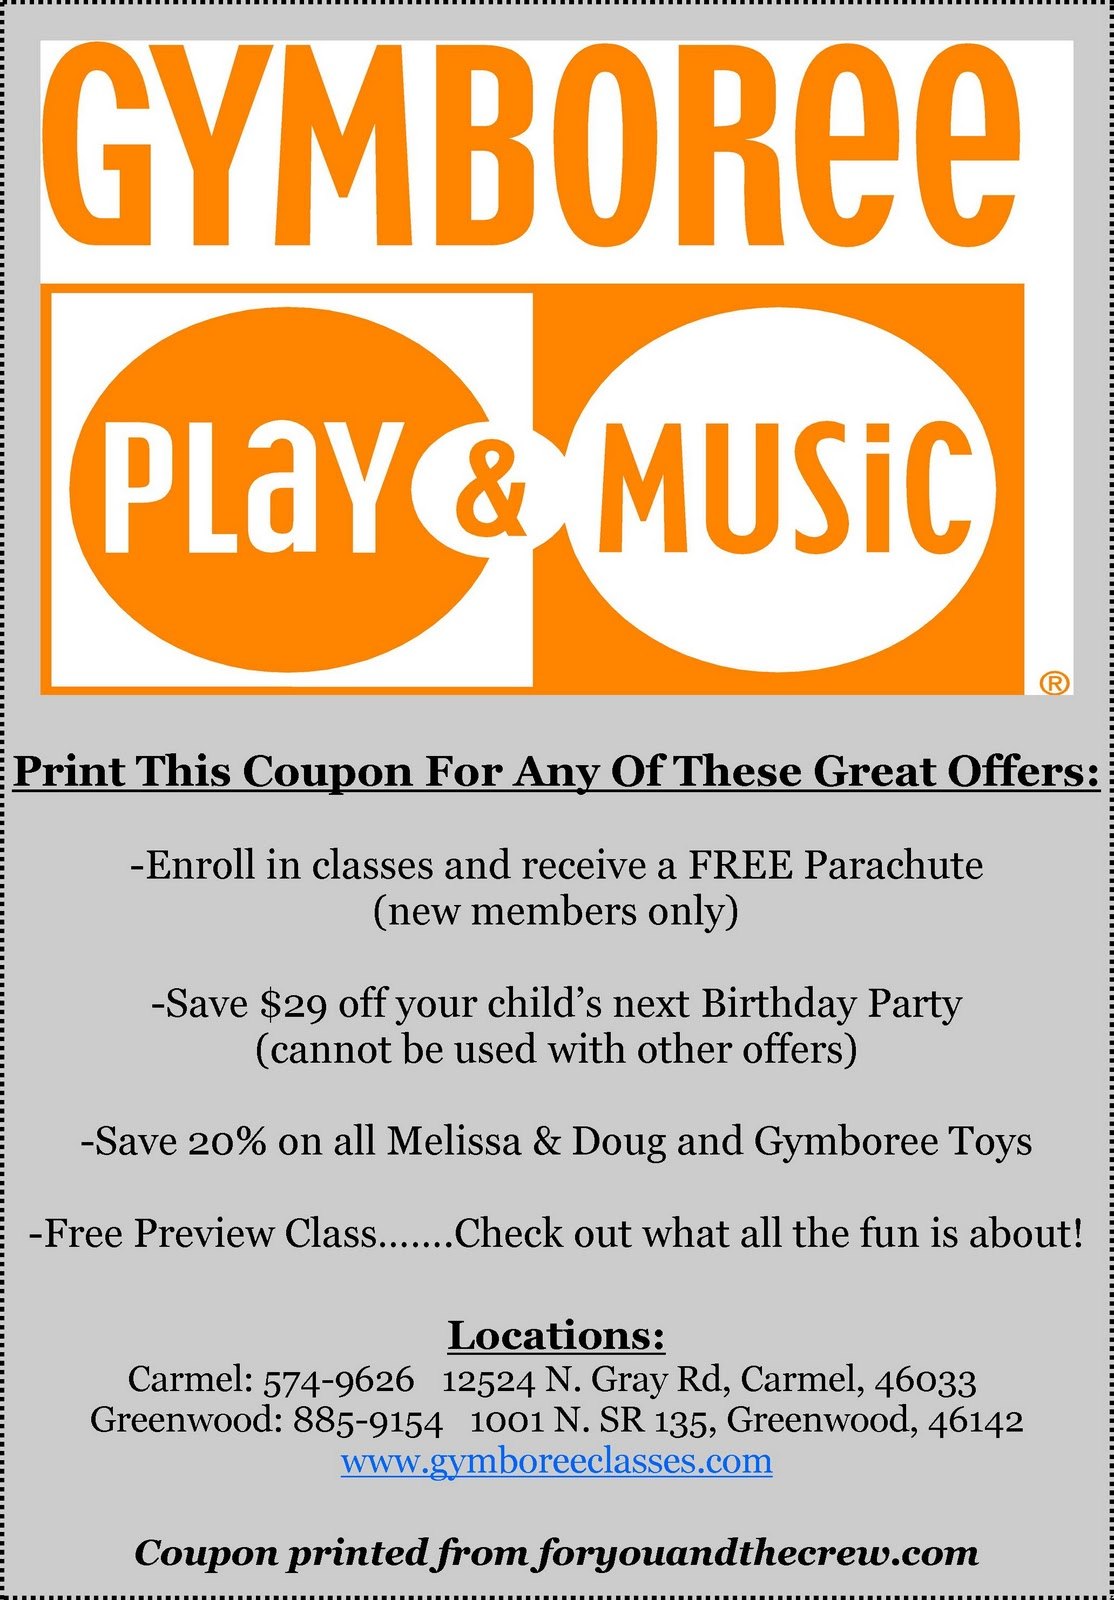 graphic about Janie and Jack Printable Coupons named Gymboree outlet discount codes printable 2018 : Harcourt outlines